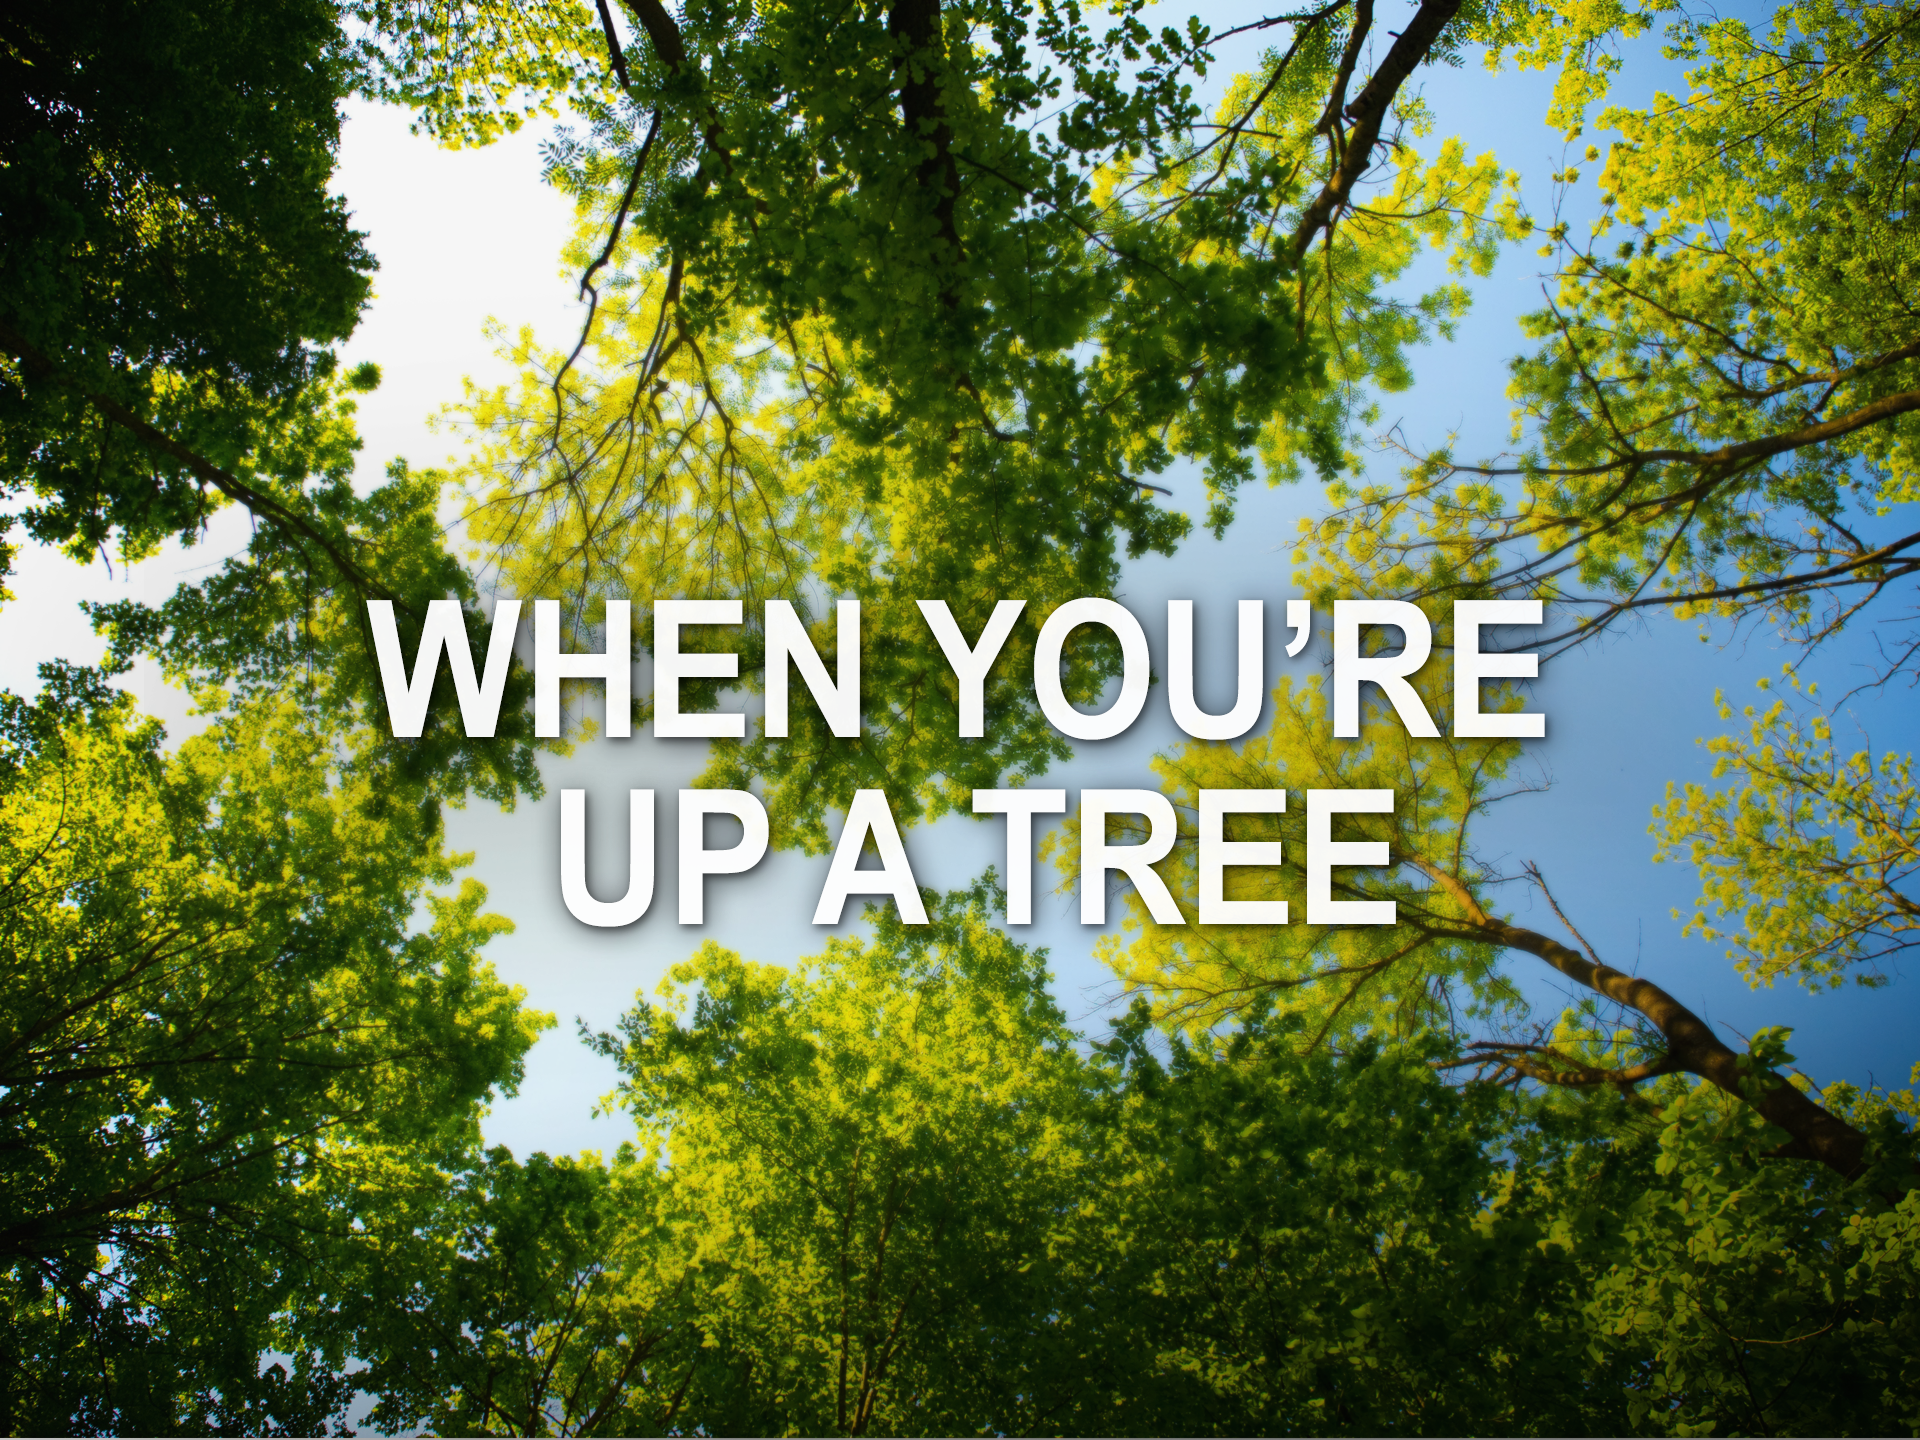 082519 when youre up a tree.png